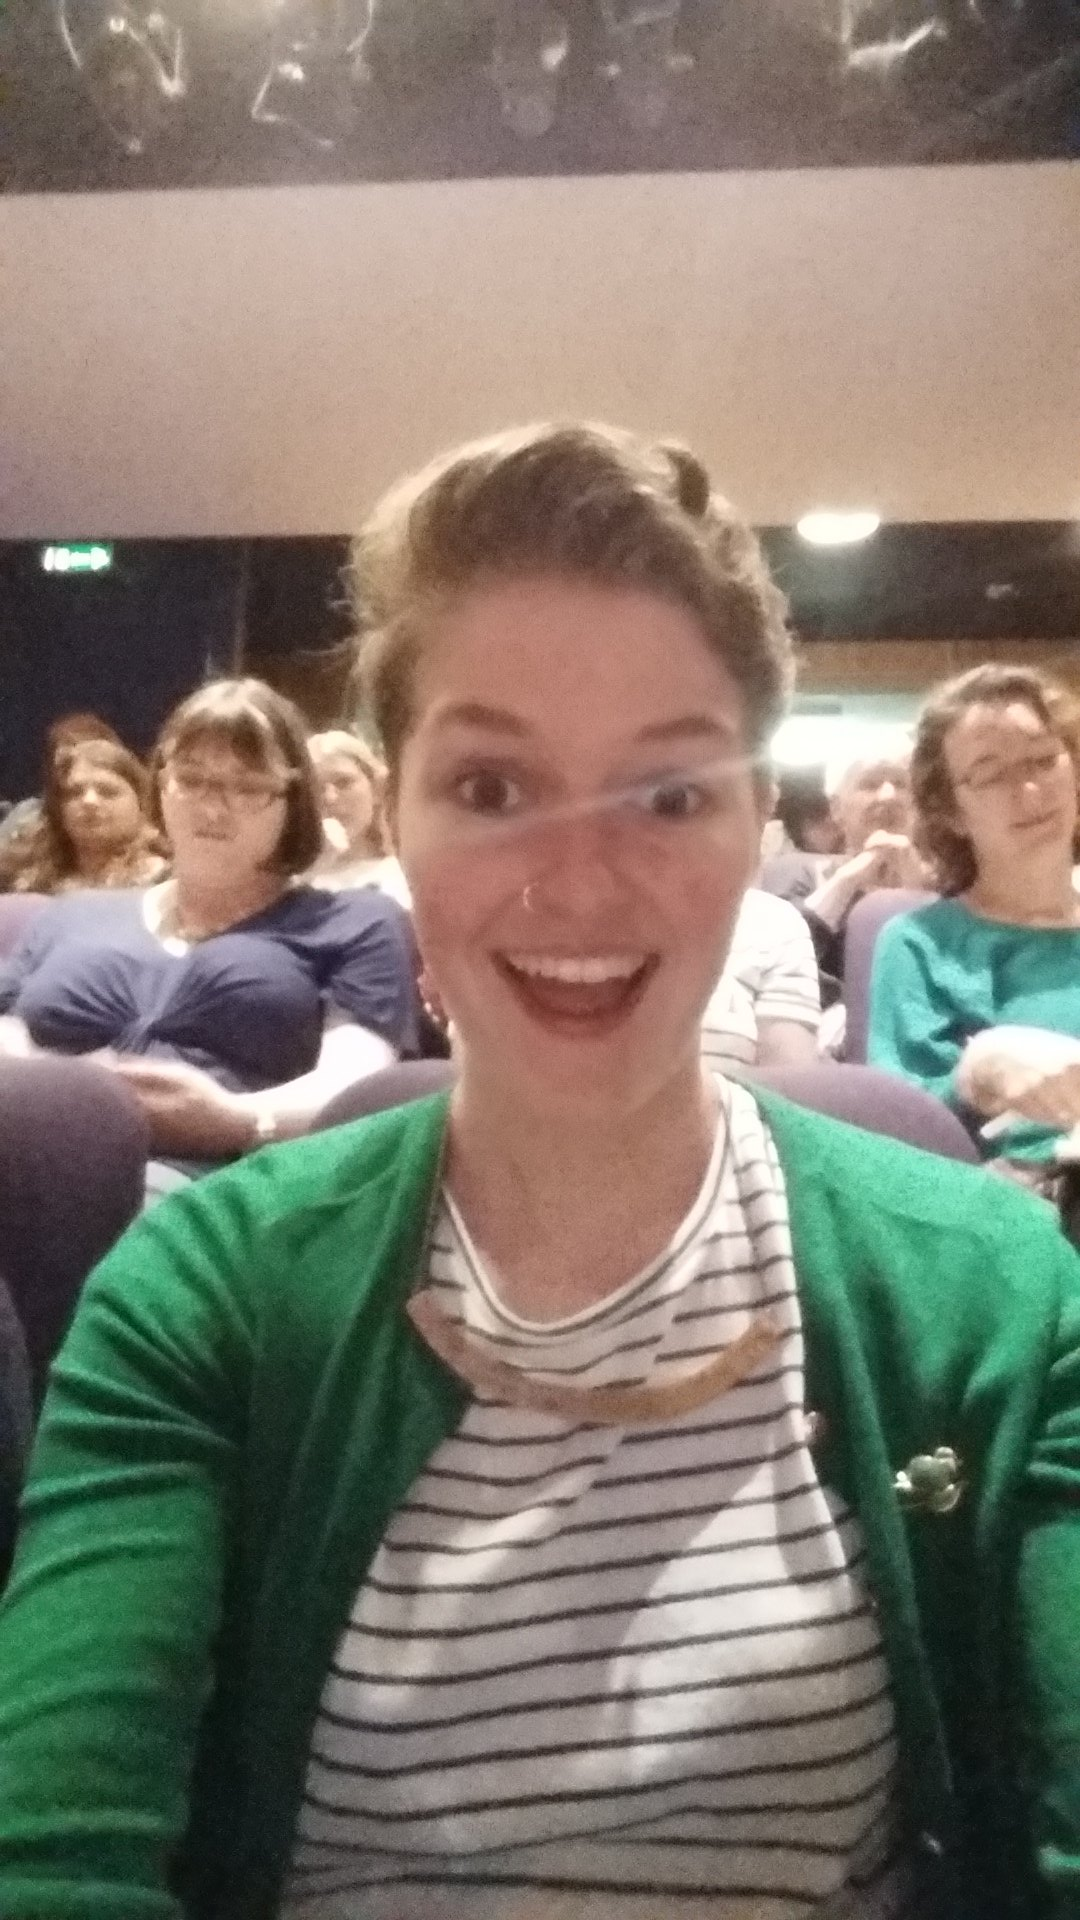 In the glorious Edinburgh for @WritelikeaGrrrl and @forbookssake first EVER #GrrrlCon and so darn excited omg https://t.co/9gpwbHybsg